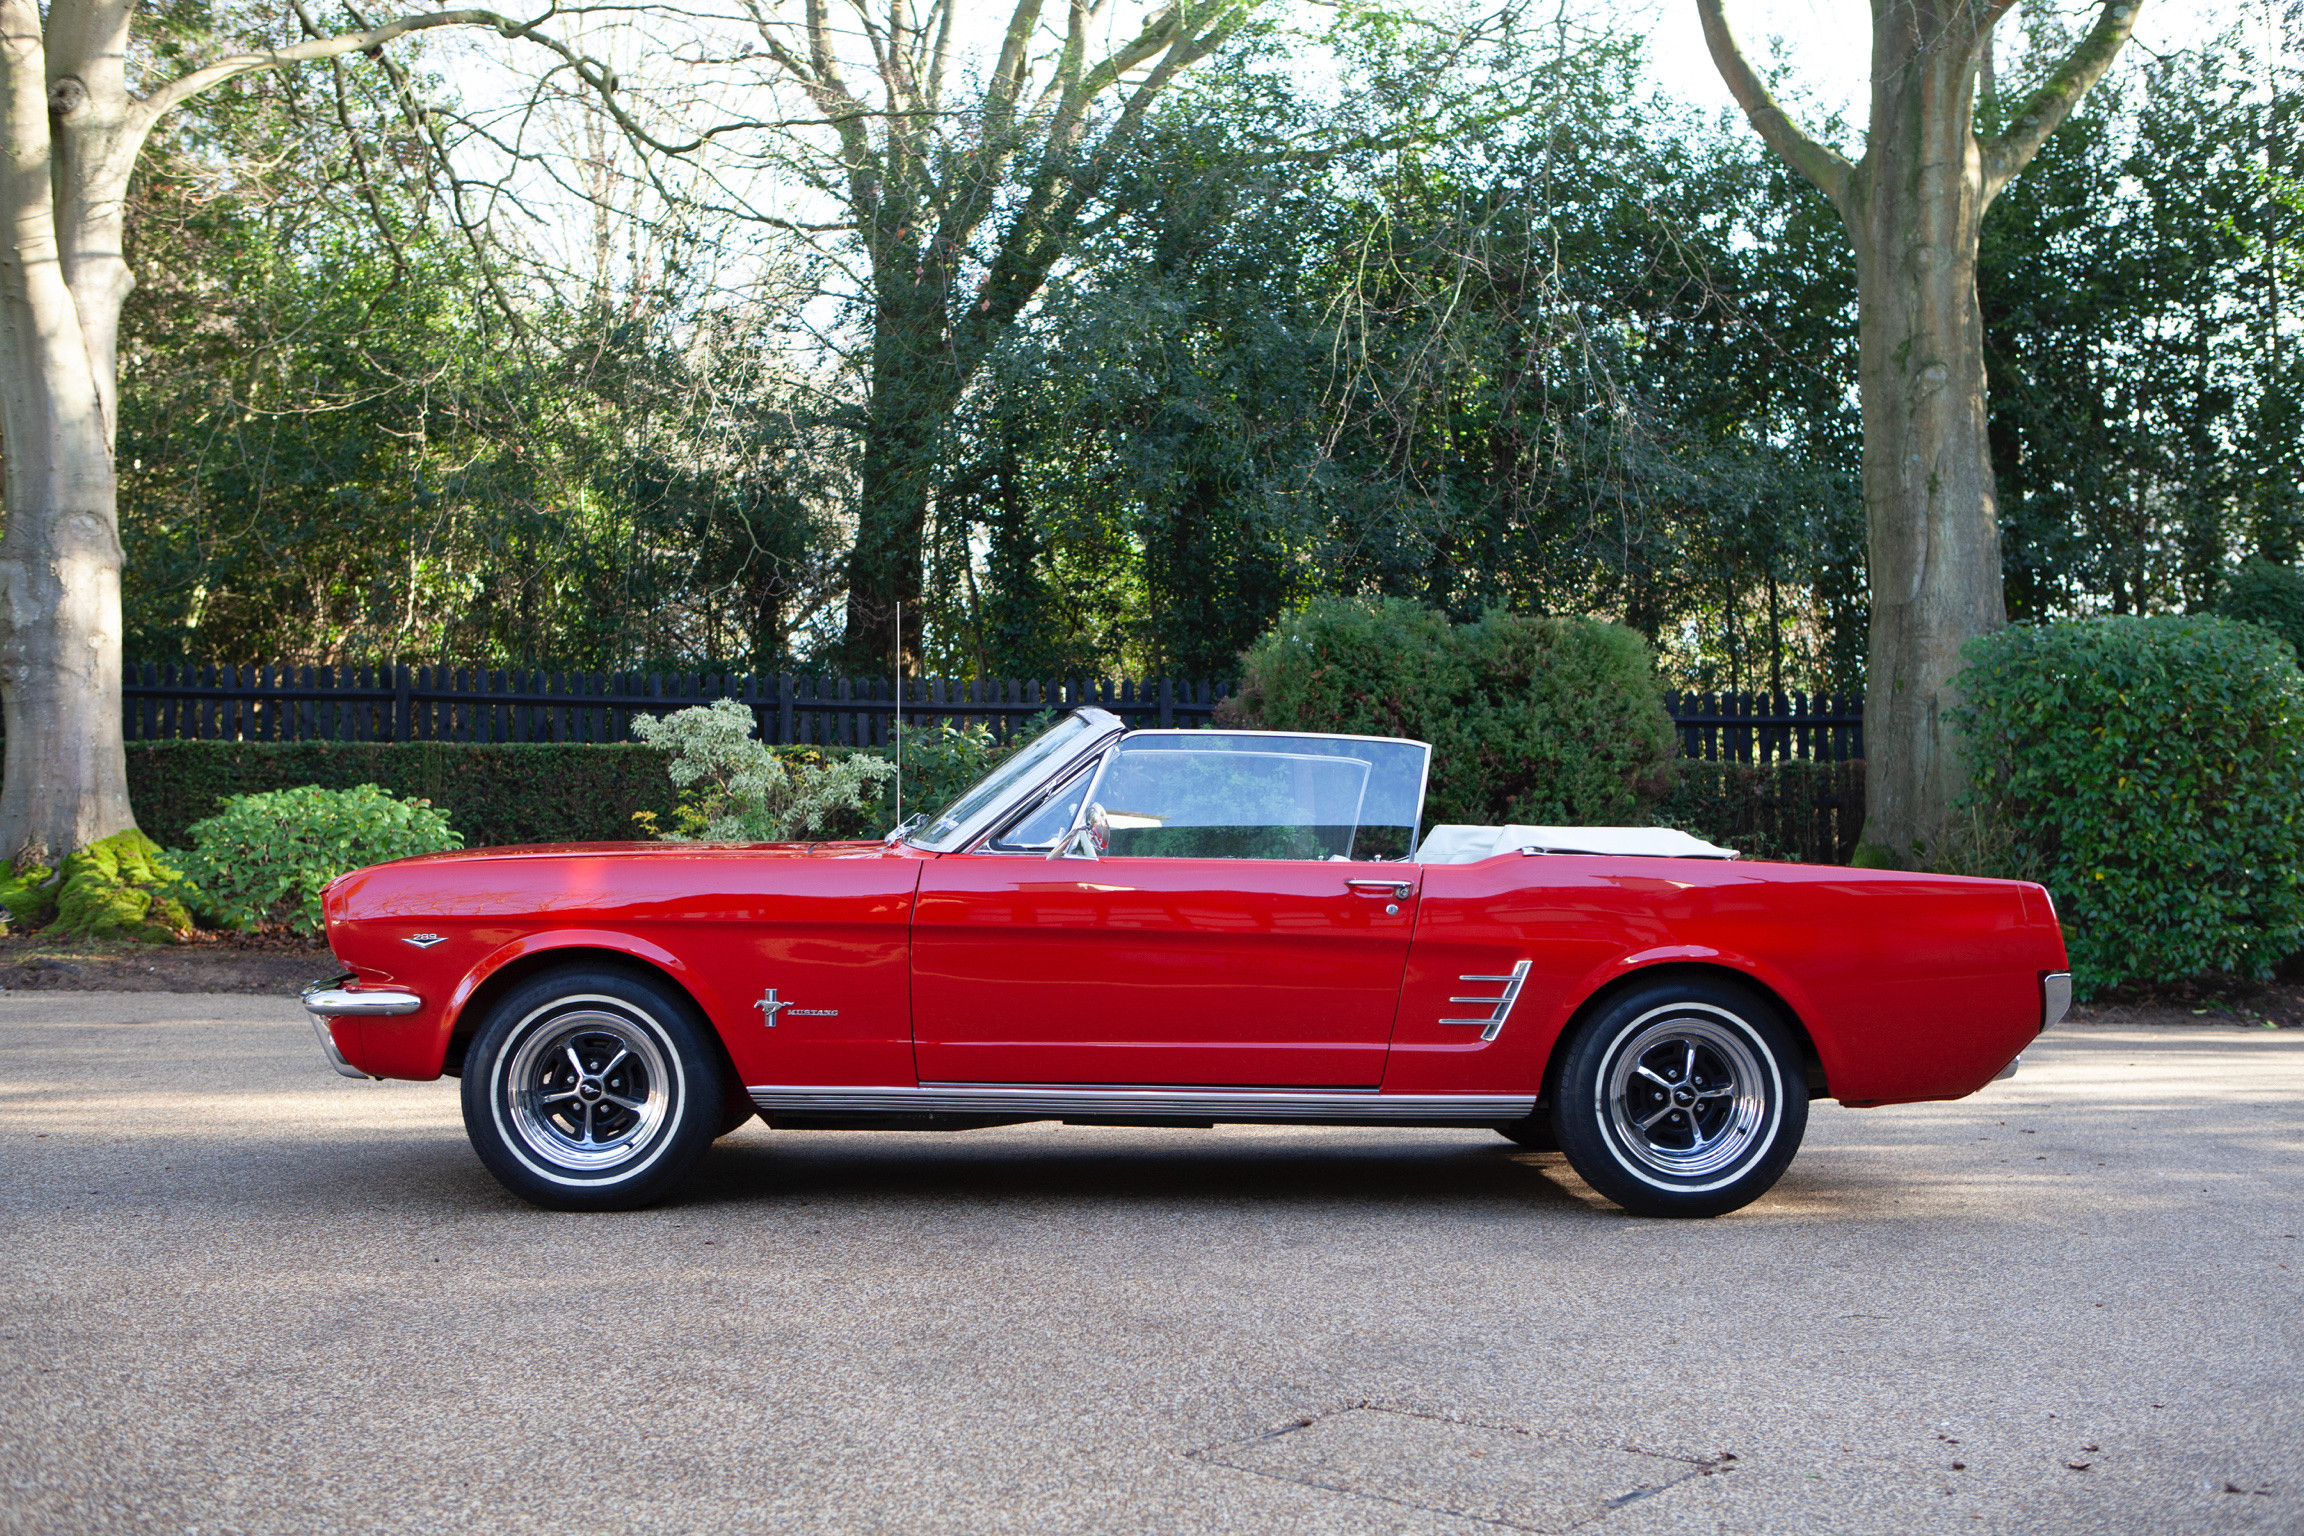 Ford Mustang Convertible Hire Oxted